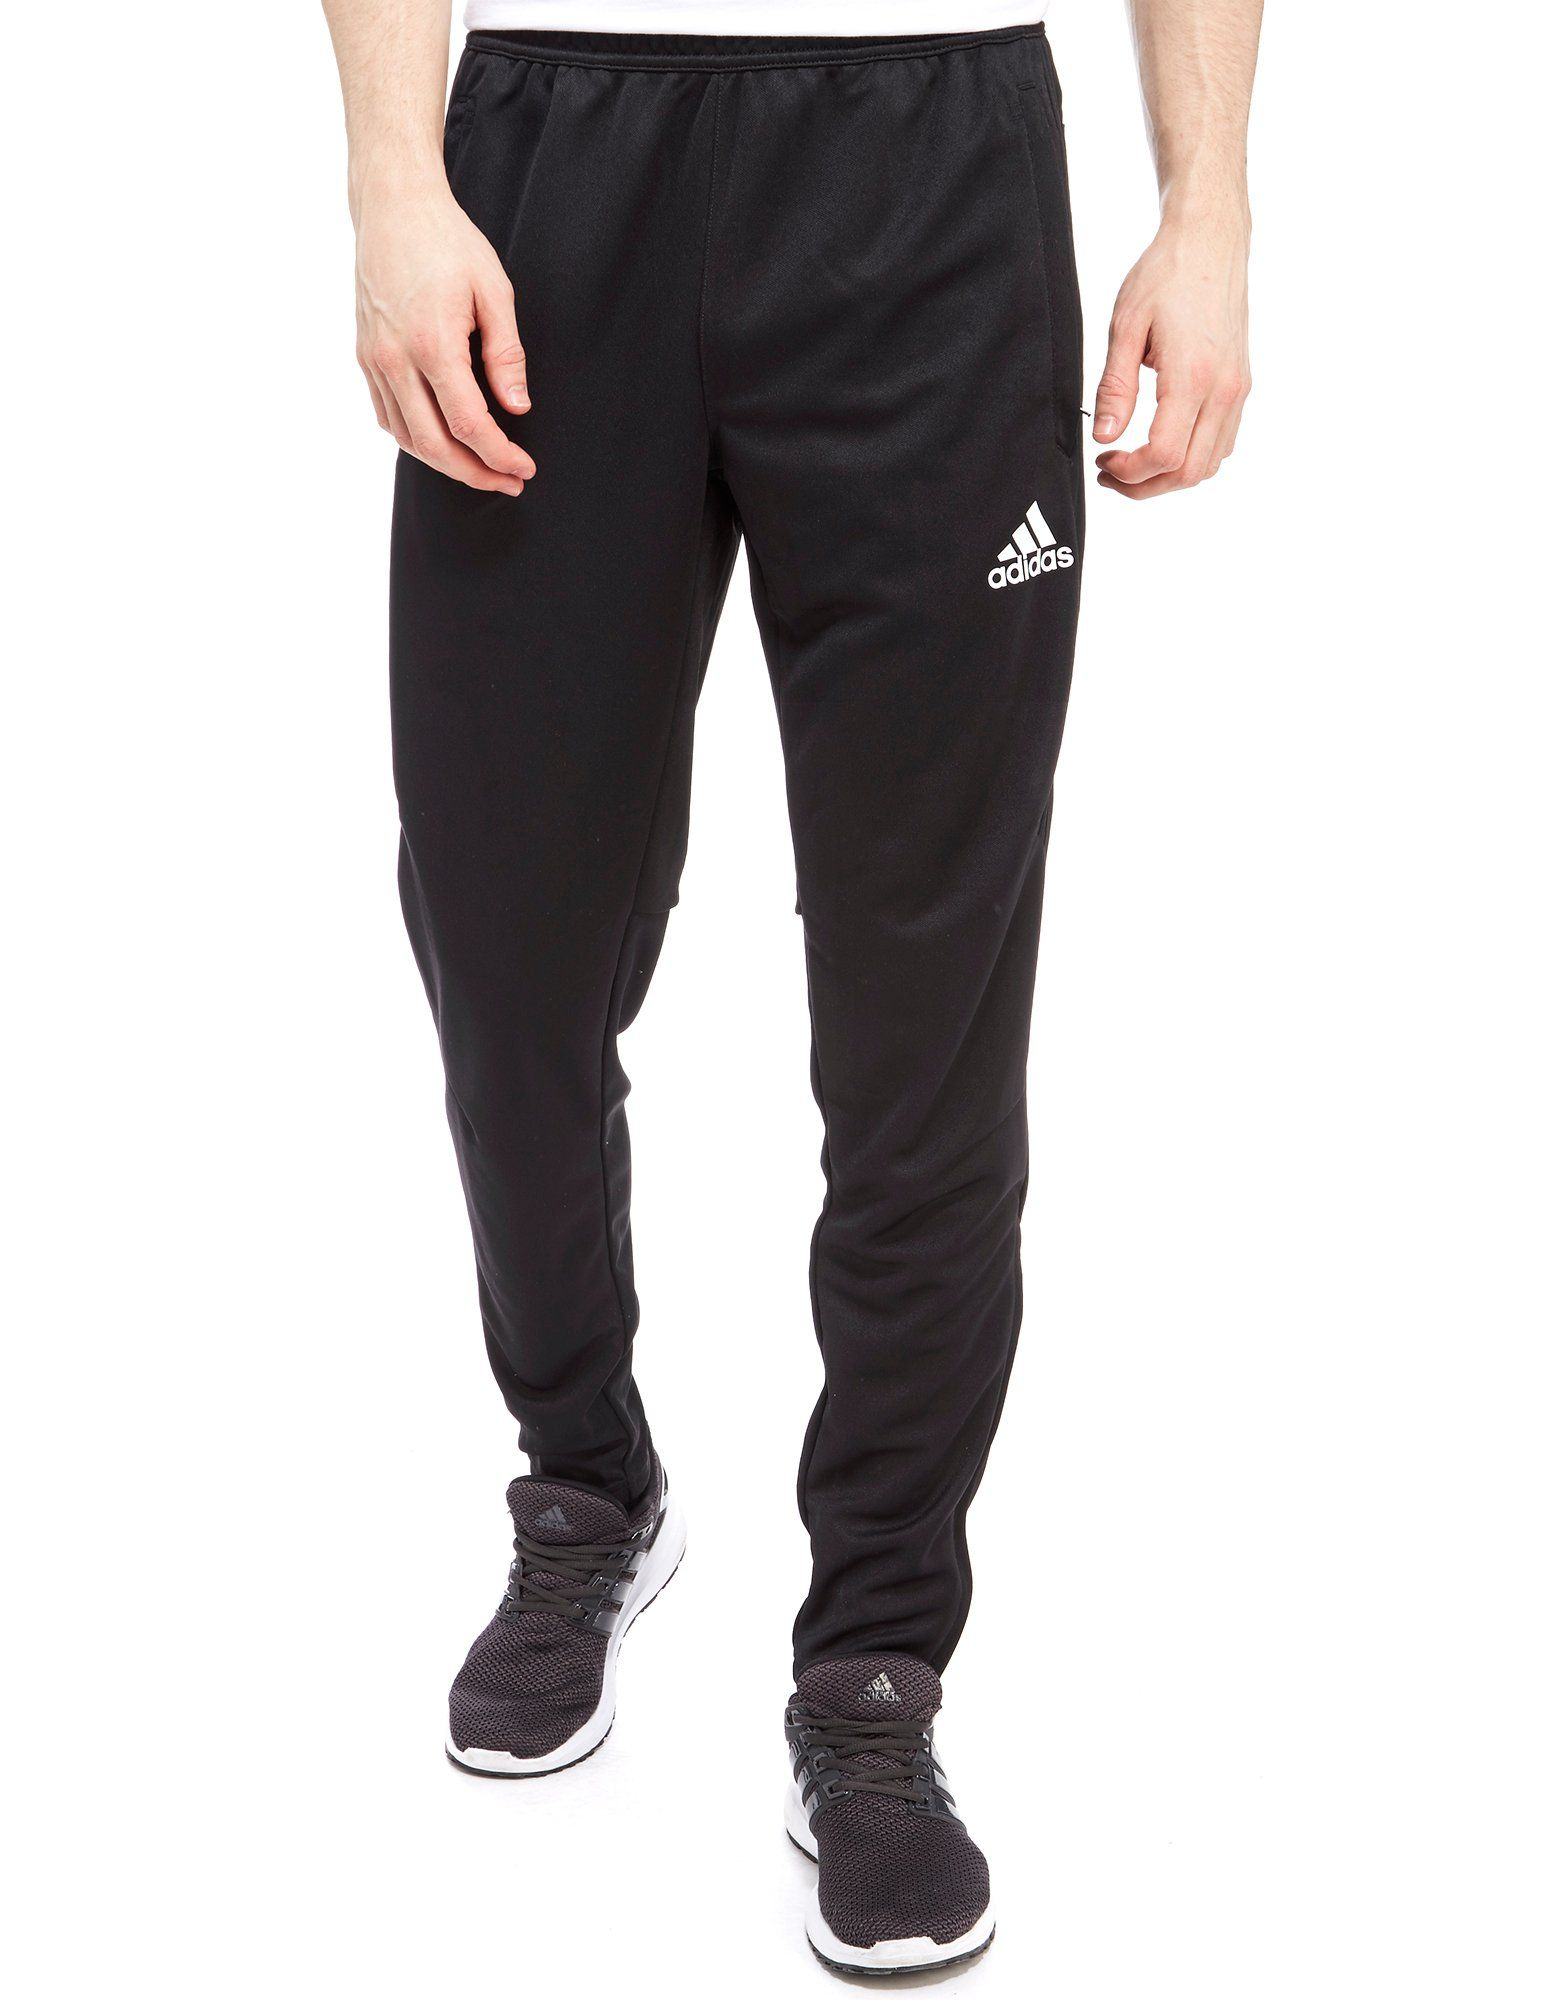 adidas tiro 15 poly training pants jd sports. Black Bedroom Furniture Sets. Home Design Ideas